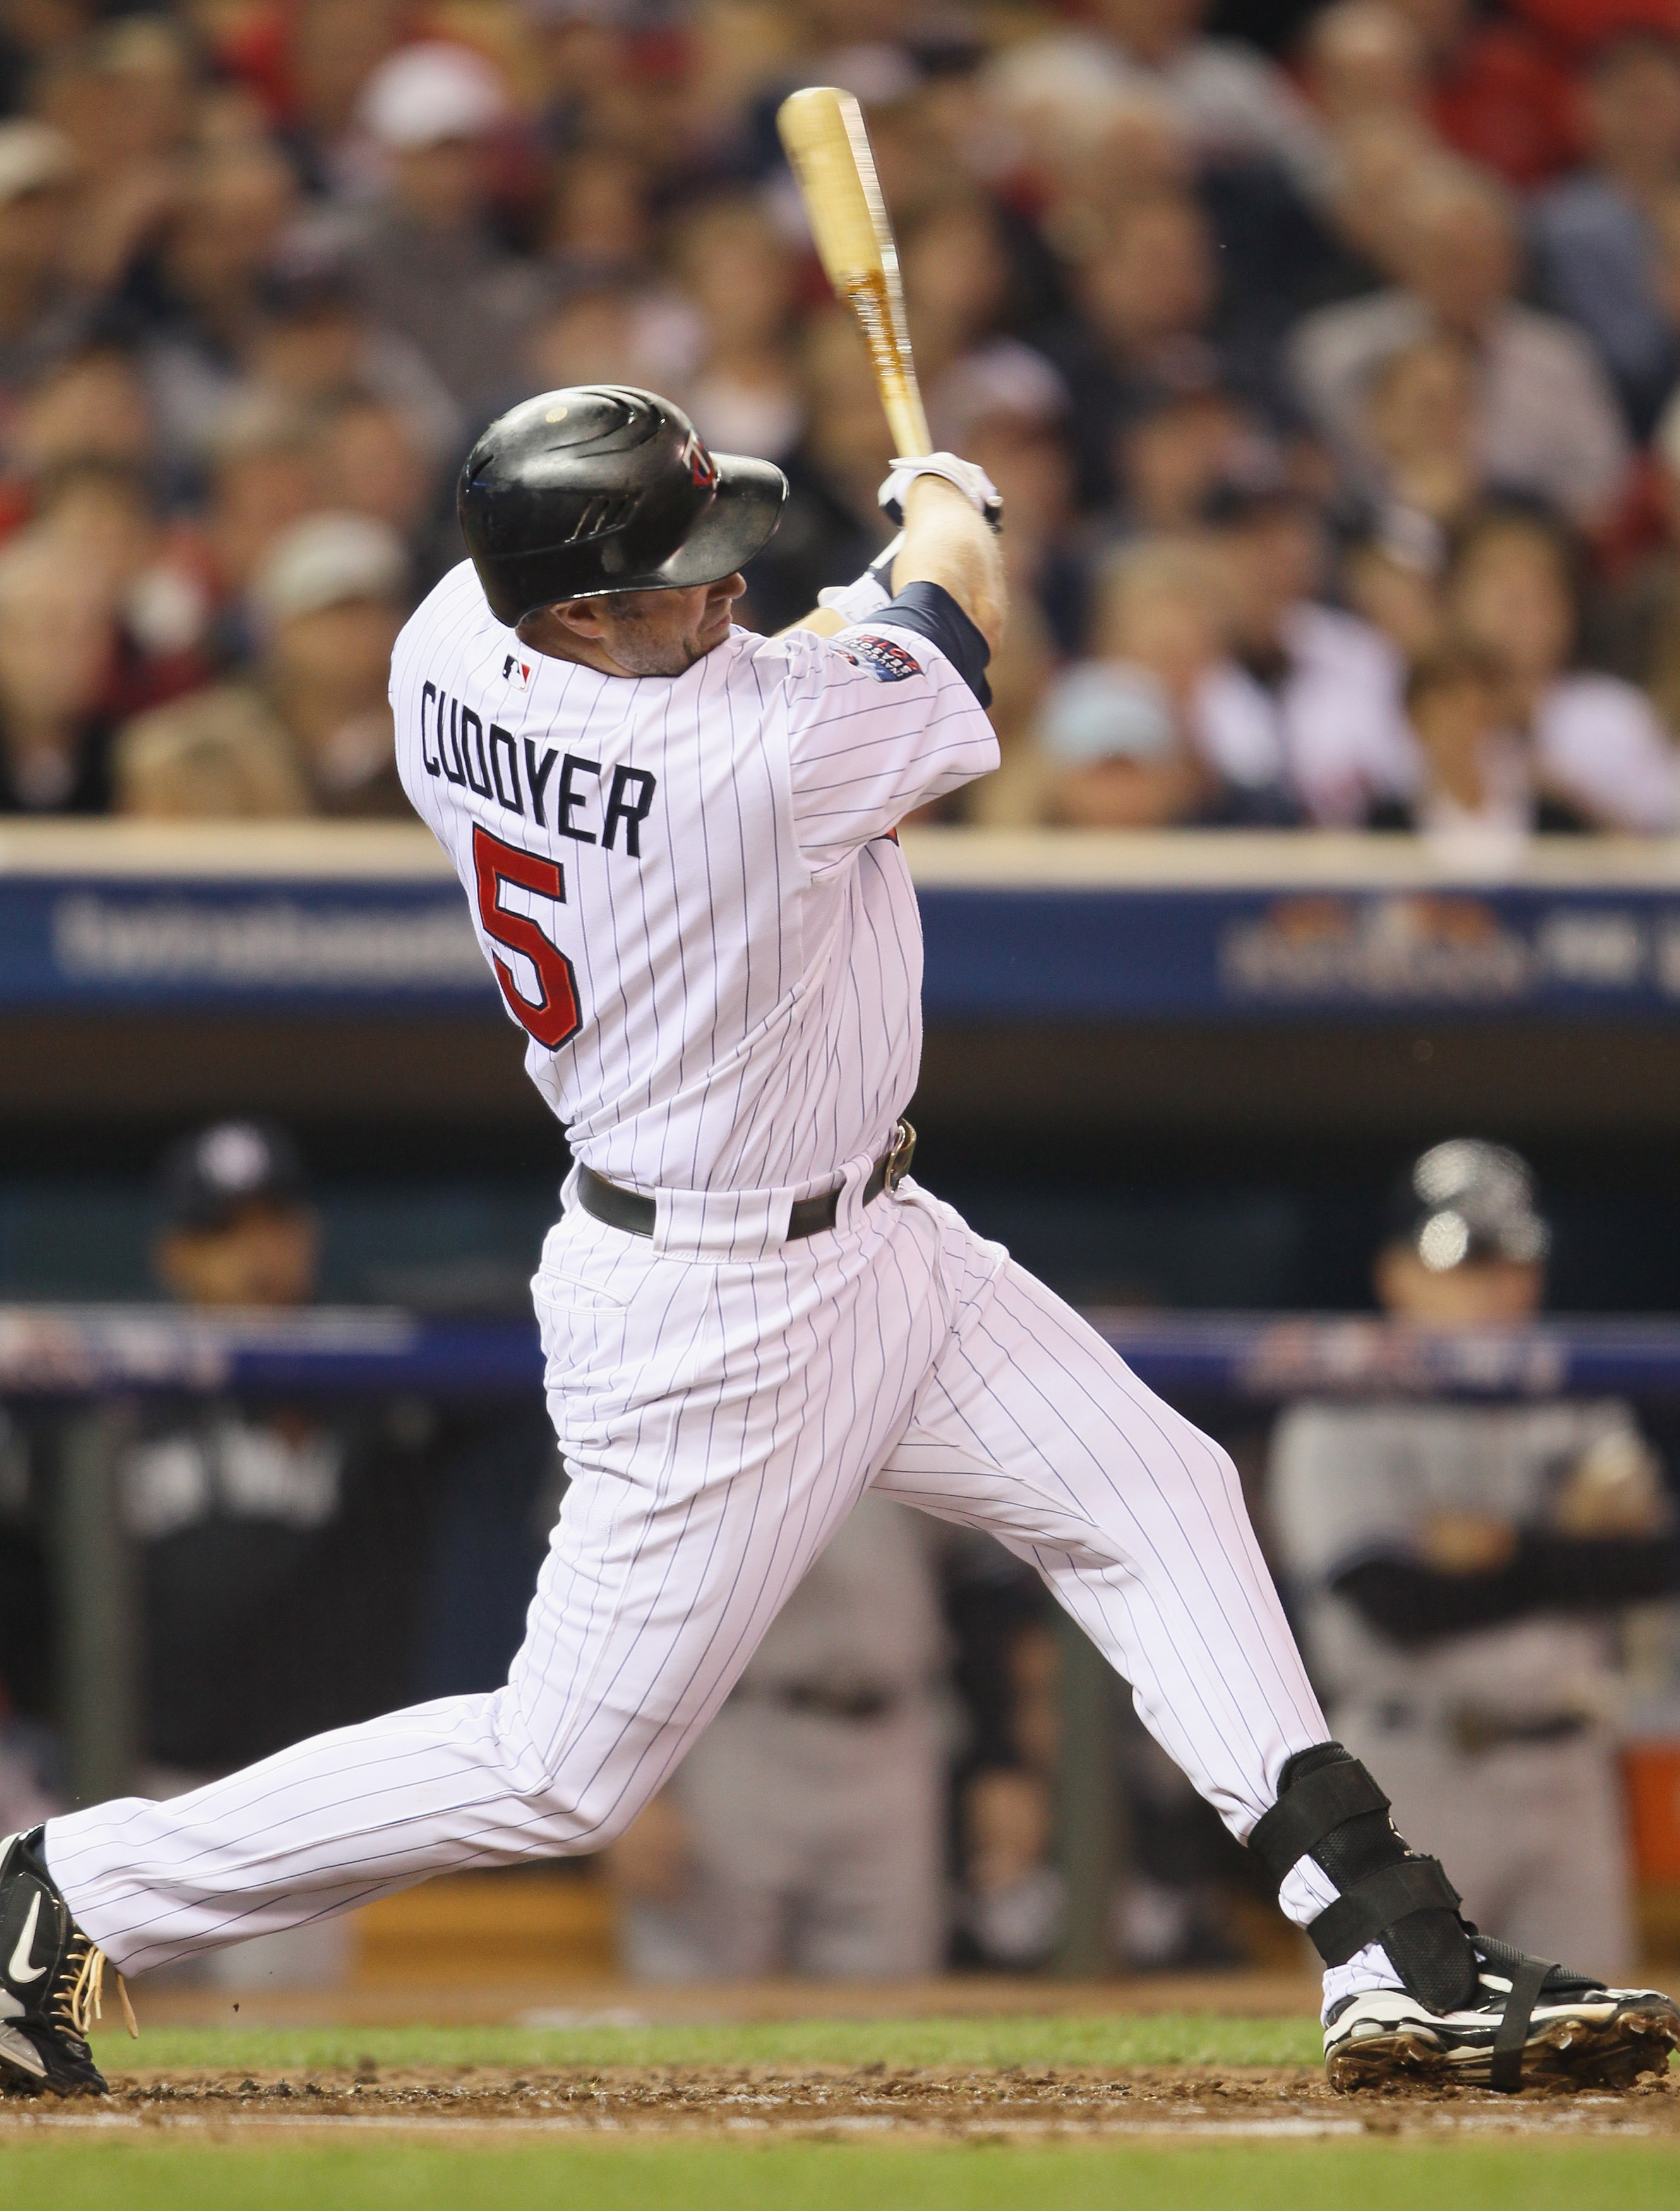 Michael Cuddyer begins his 11th season with Minnesota, representing their tendency to accrue talent through homegrown players.